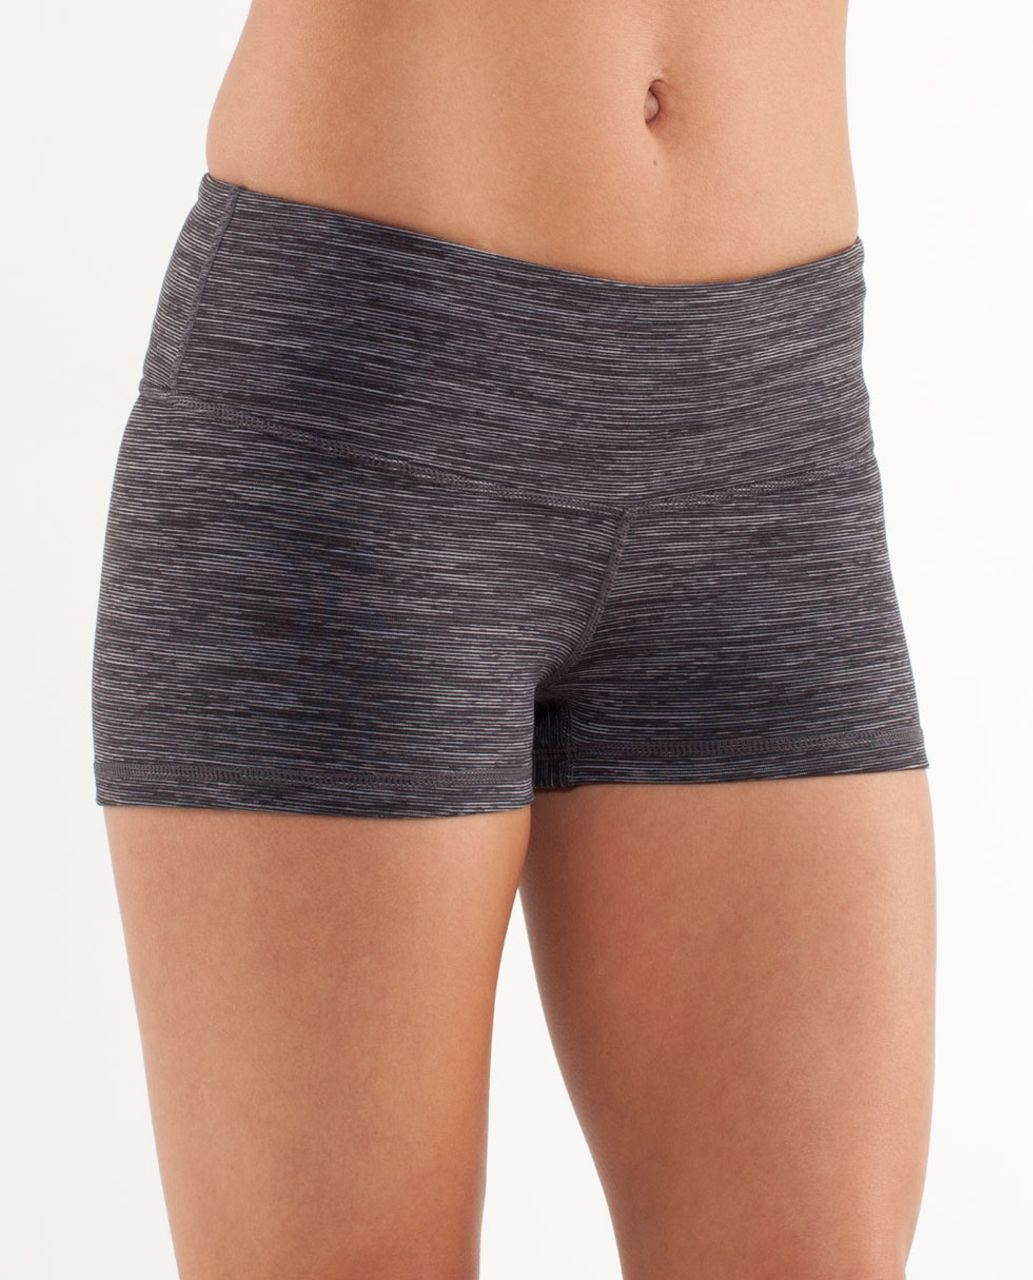 Lululemon Boogie Short - Wee Are From Space Black Combo